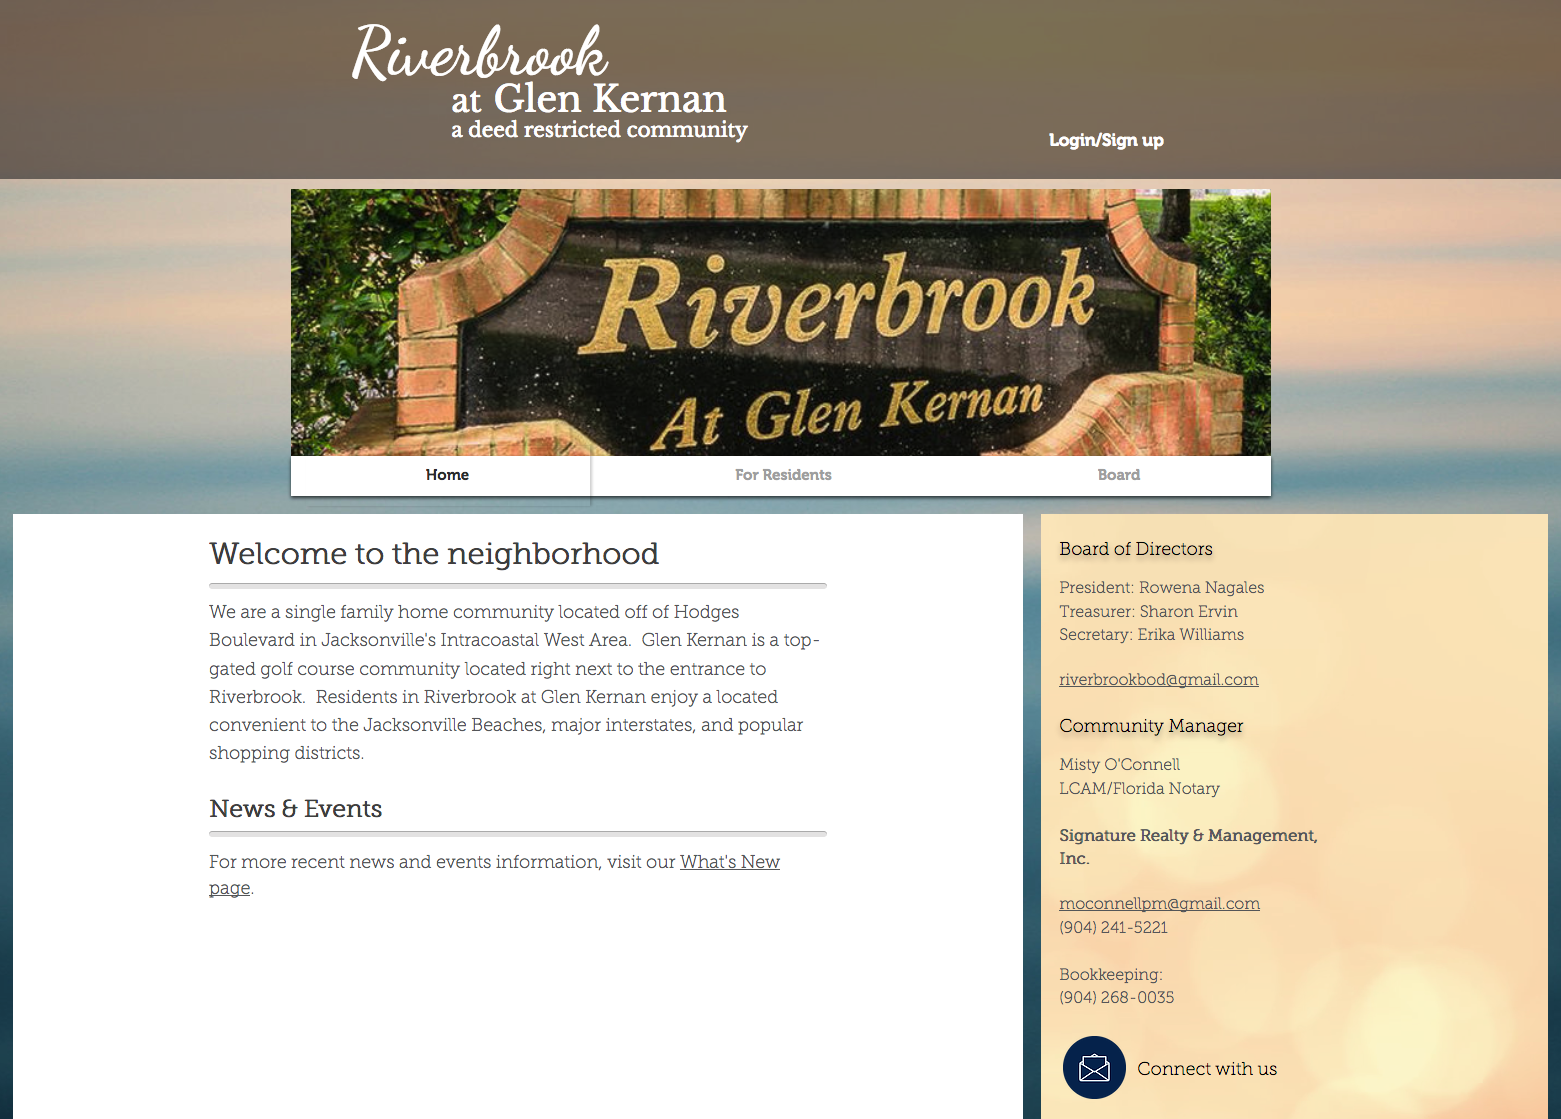 Riverbrook at Glen Kernan